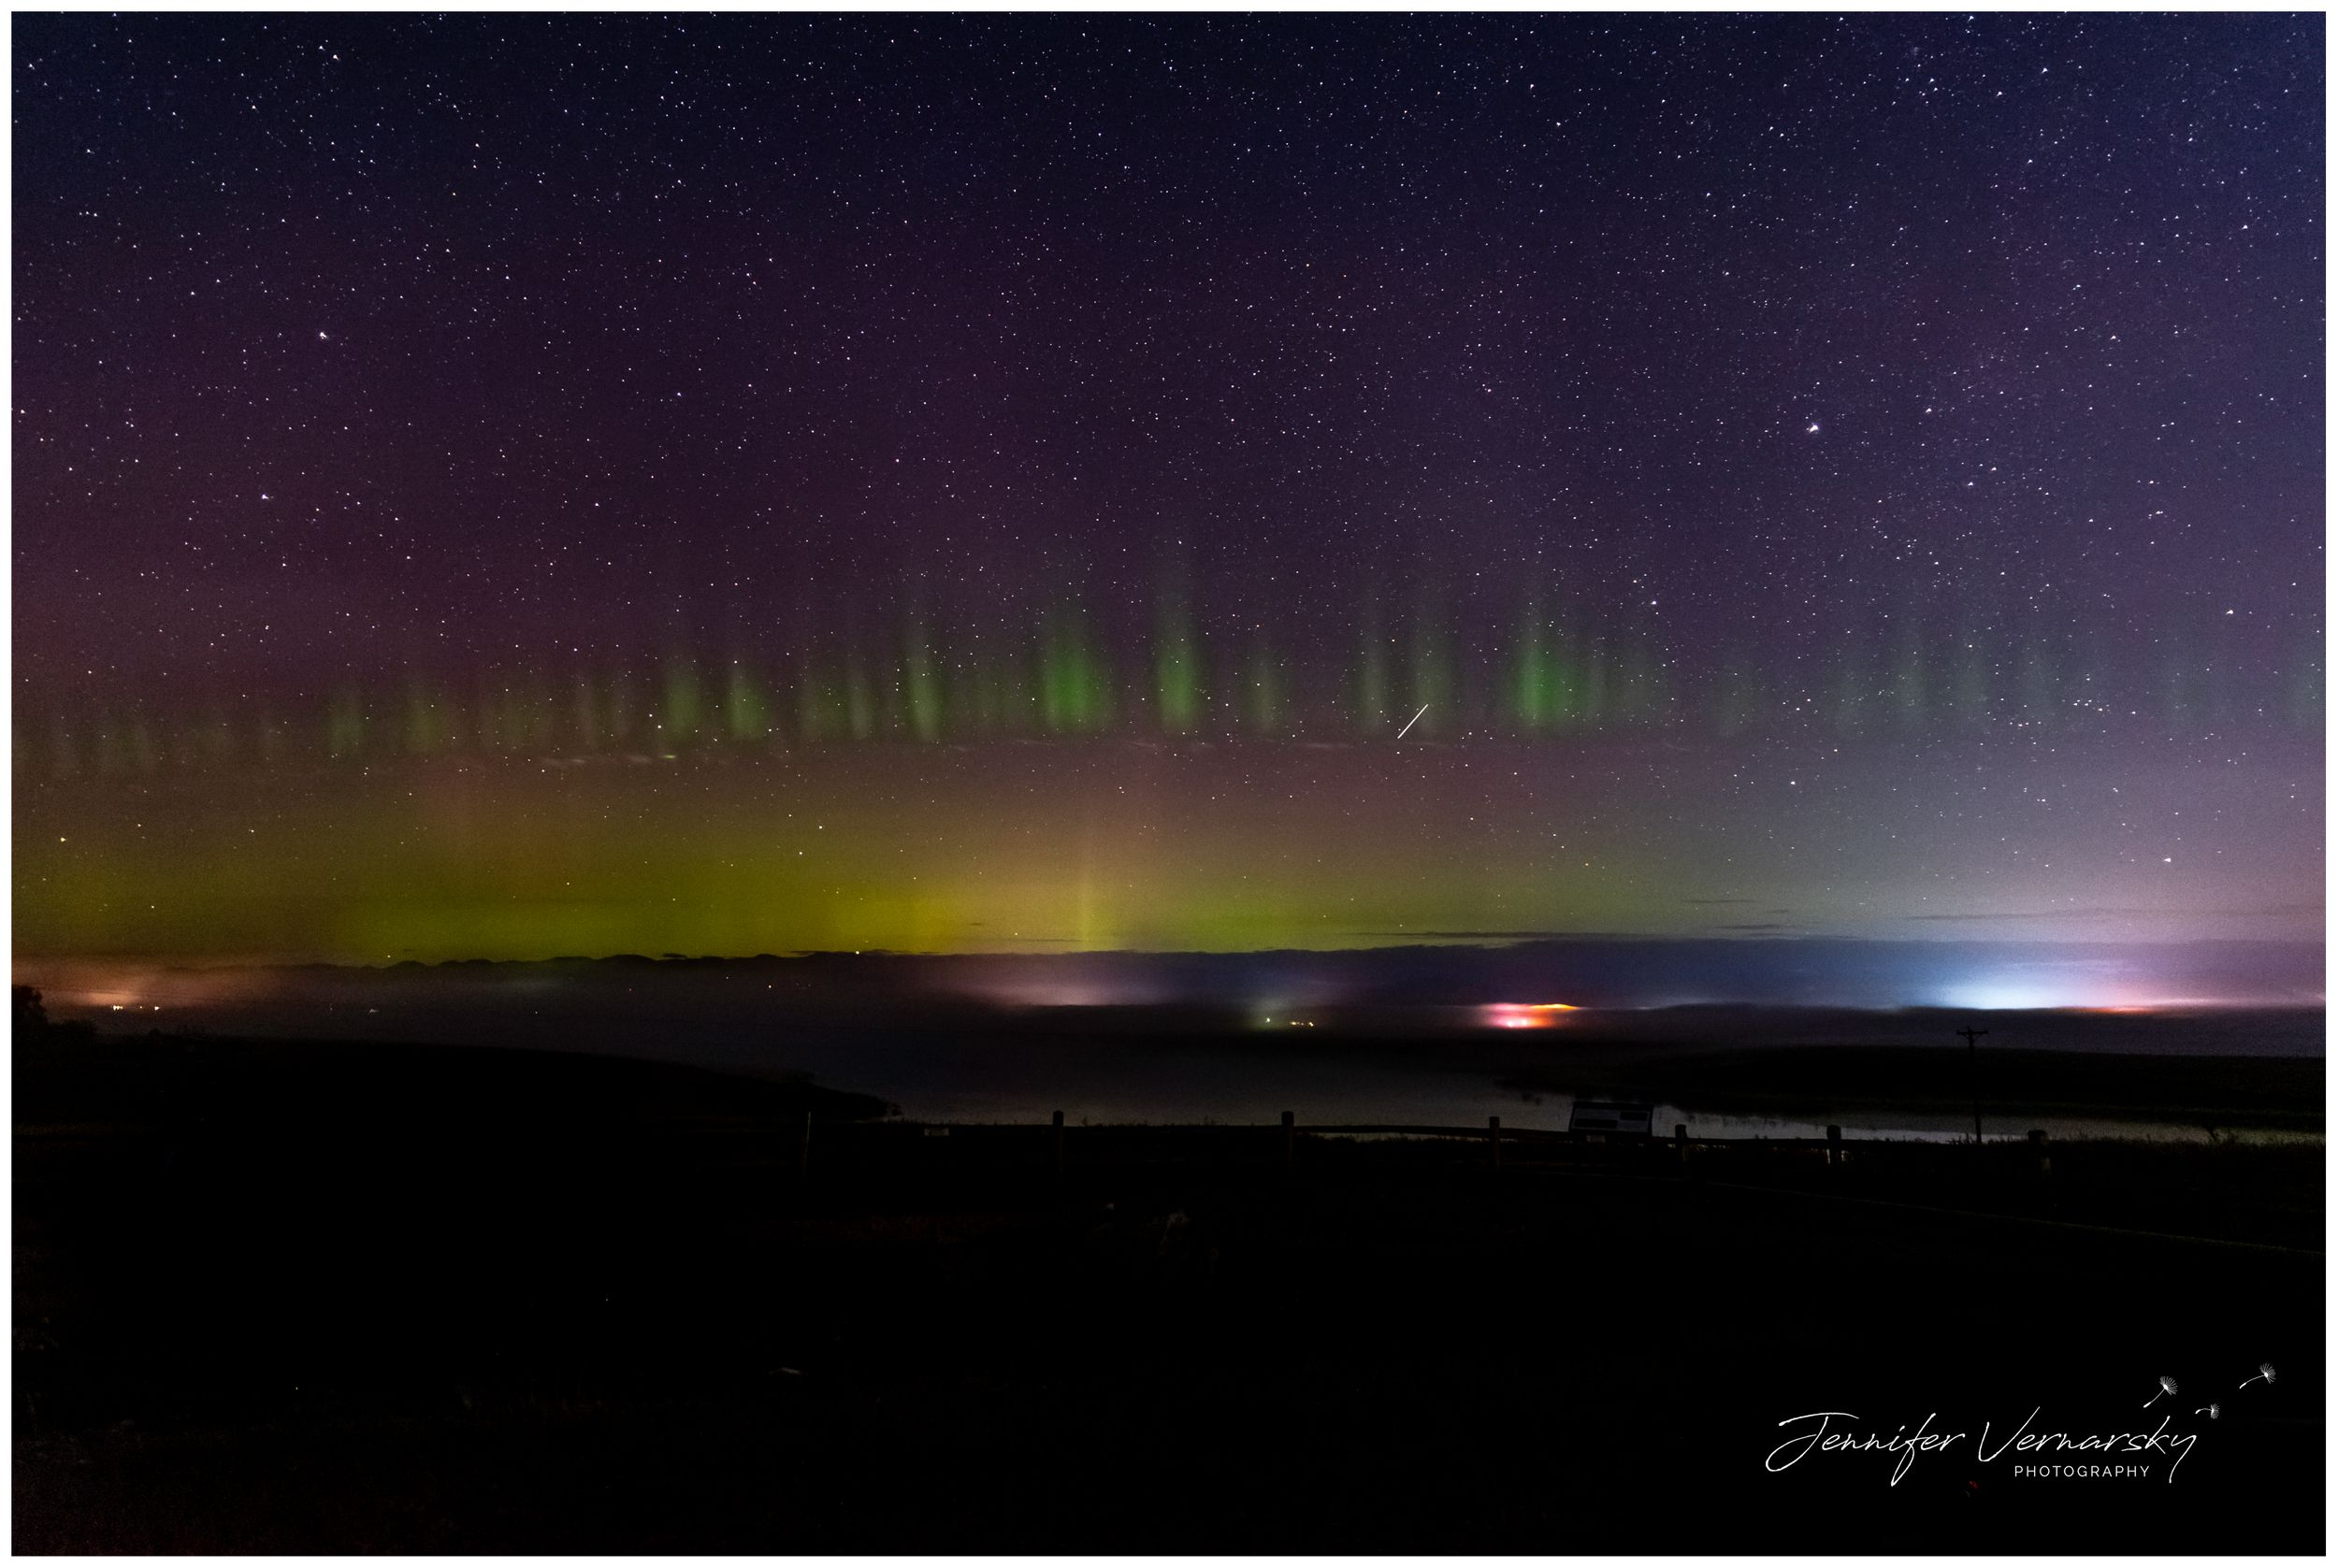 Northern lights from Kalispell, Montana with pillars and picketing of colors.